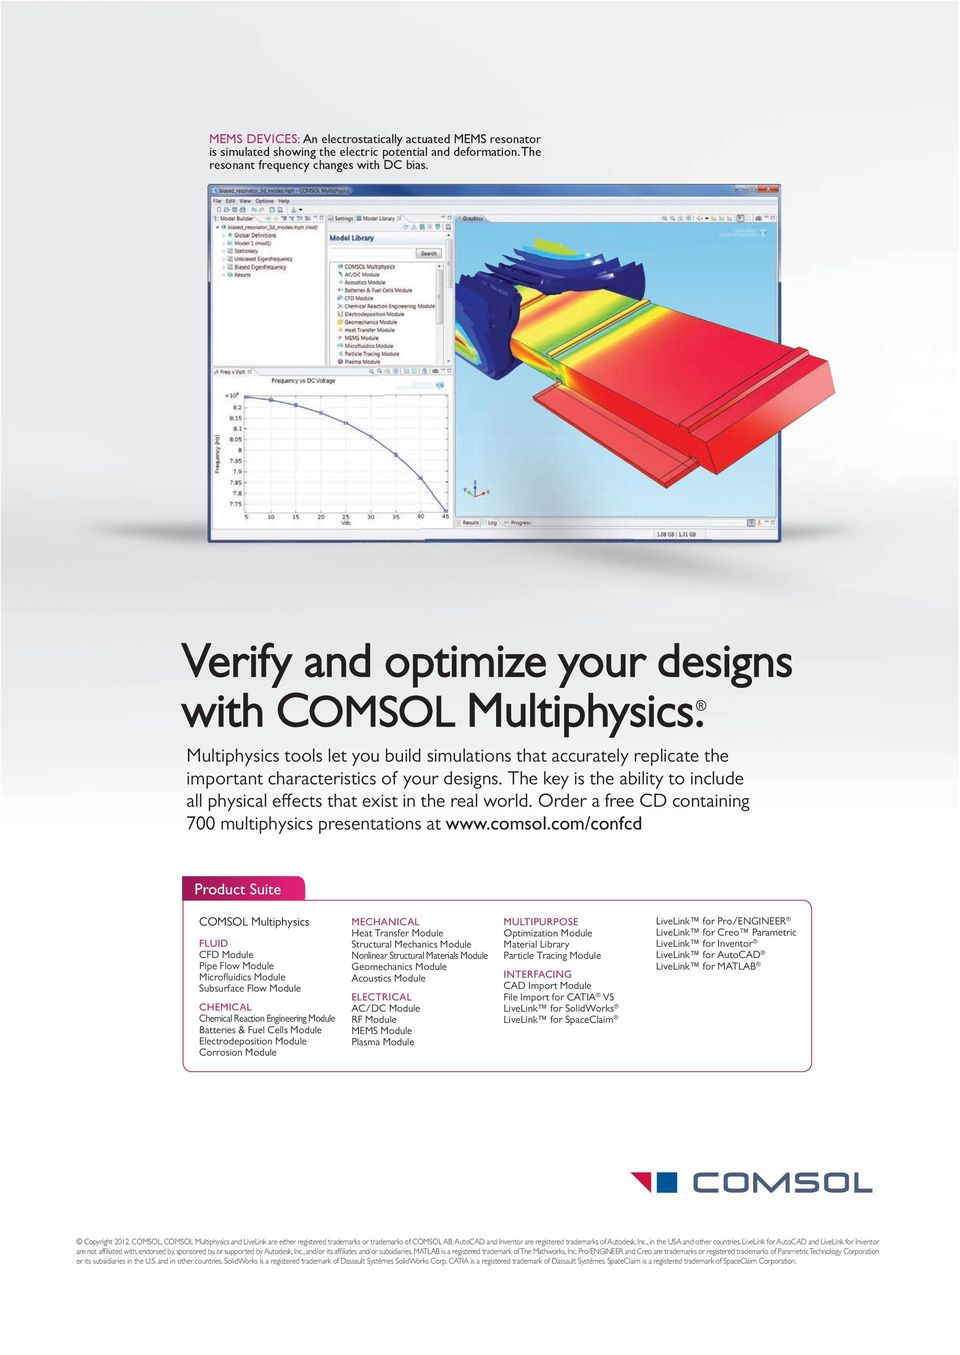 The key is the ability to include all physical effects that exist in the real world. Order a free CD containing 700 multiphysics presentations at www.comsol.